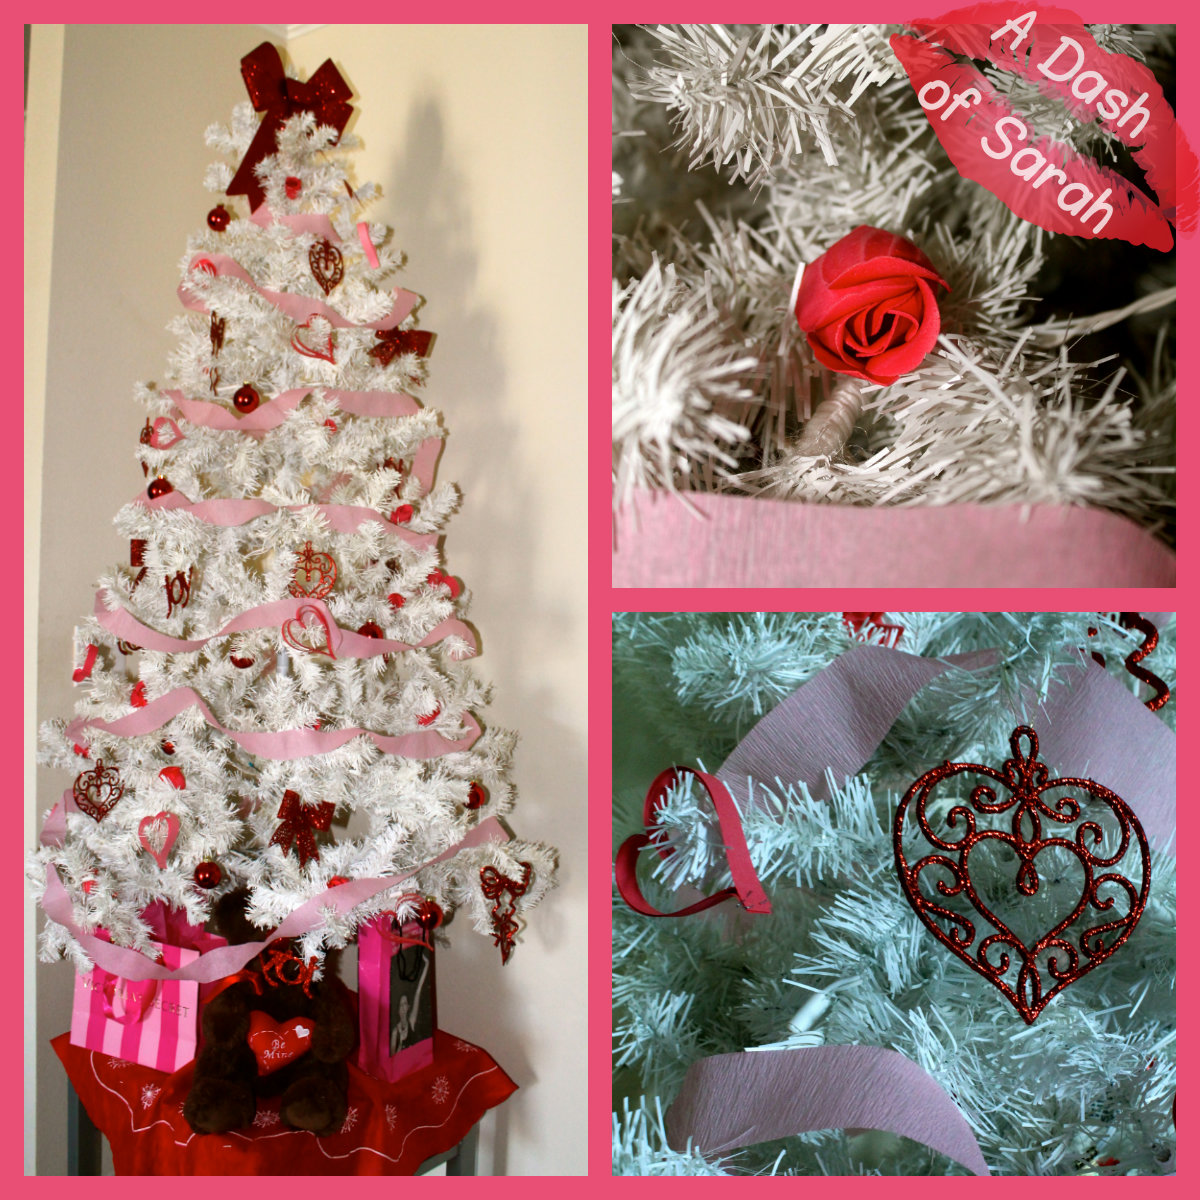 Valentine tree ornaments - I Decided To Spruce Up The Dining Table While I Was At It Adding Some Pink And White Artificial Flowers To A Red Vase And Showcasing Some Glittery Hearts